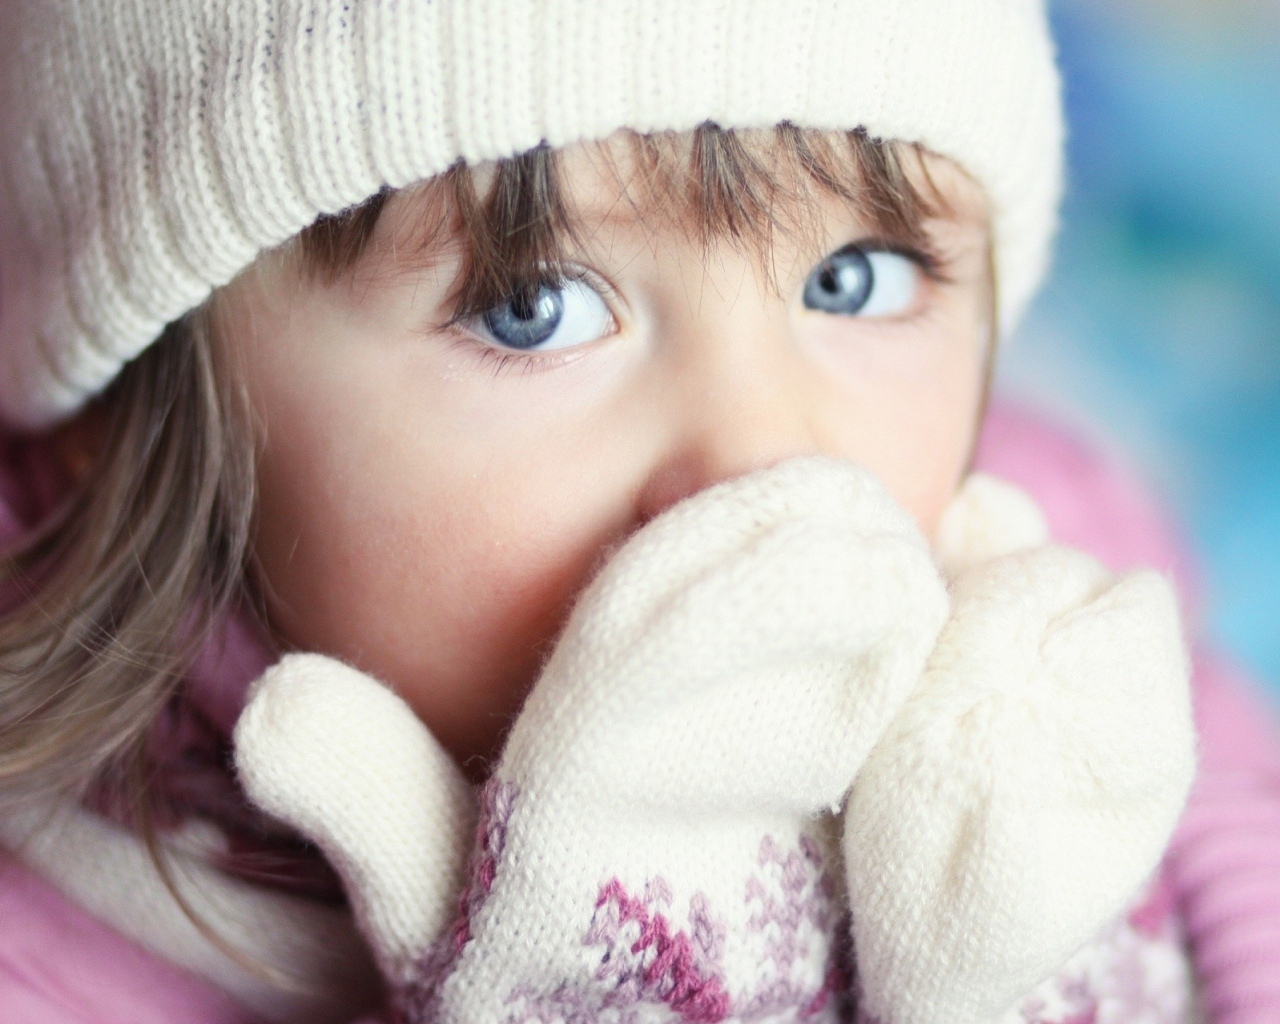 girl_child_blue_eyes_gloves_hat_95250_1280x1024